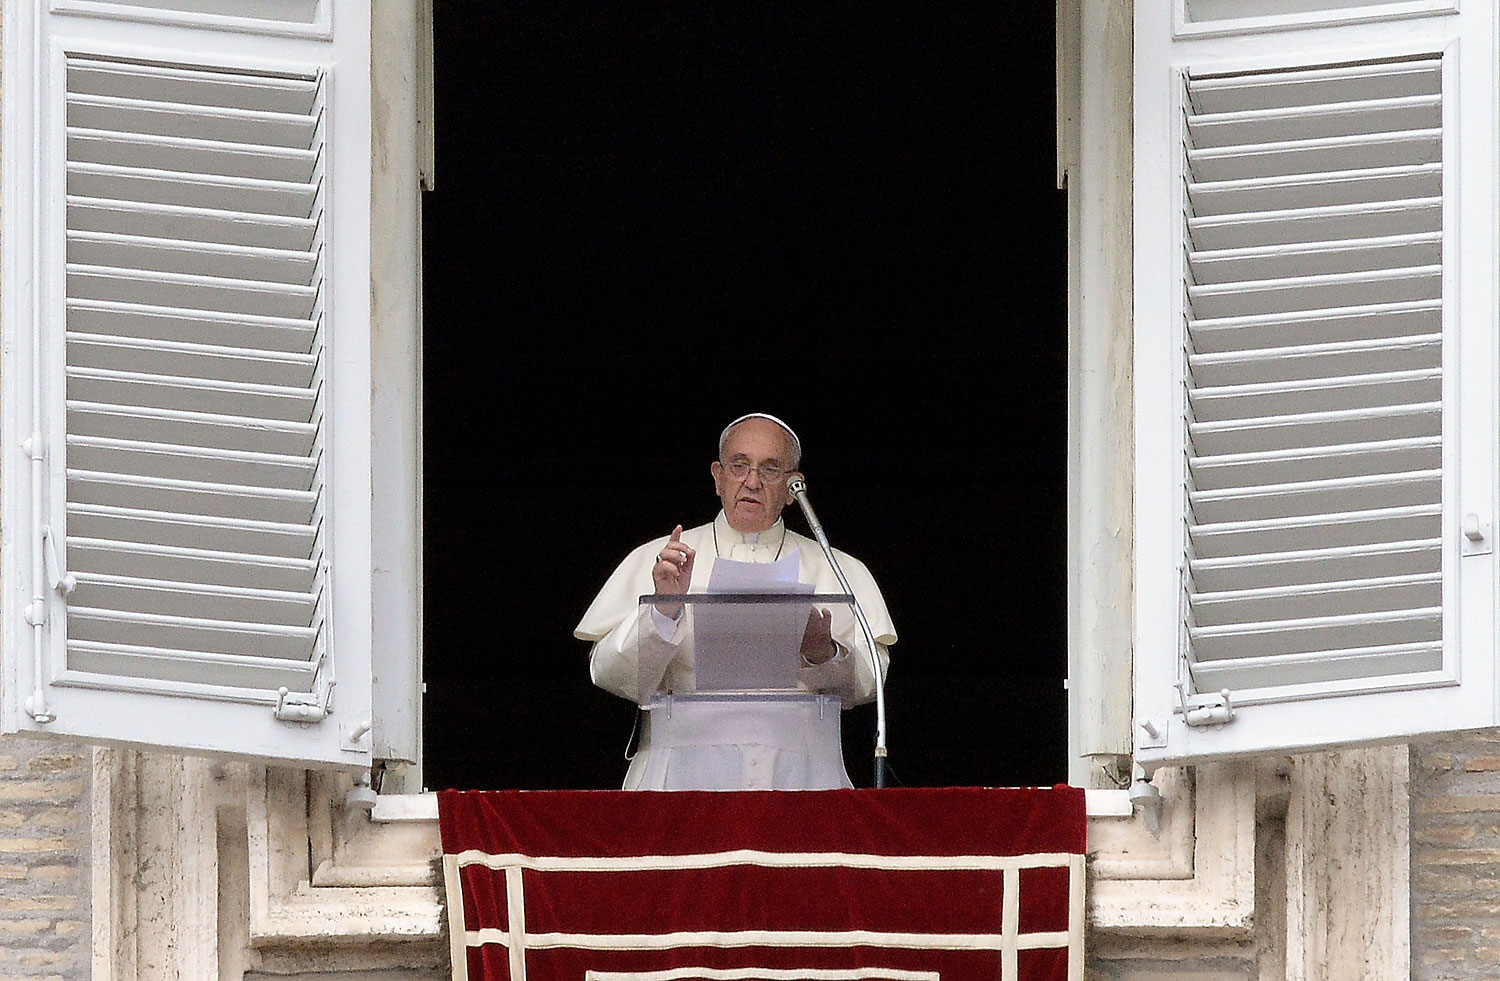 Pope Francis addresses faithful from the window of his study overlooking St. Peter's Square at the Vatican during his Sunday Angelus prayer on July 13, 2014